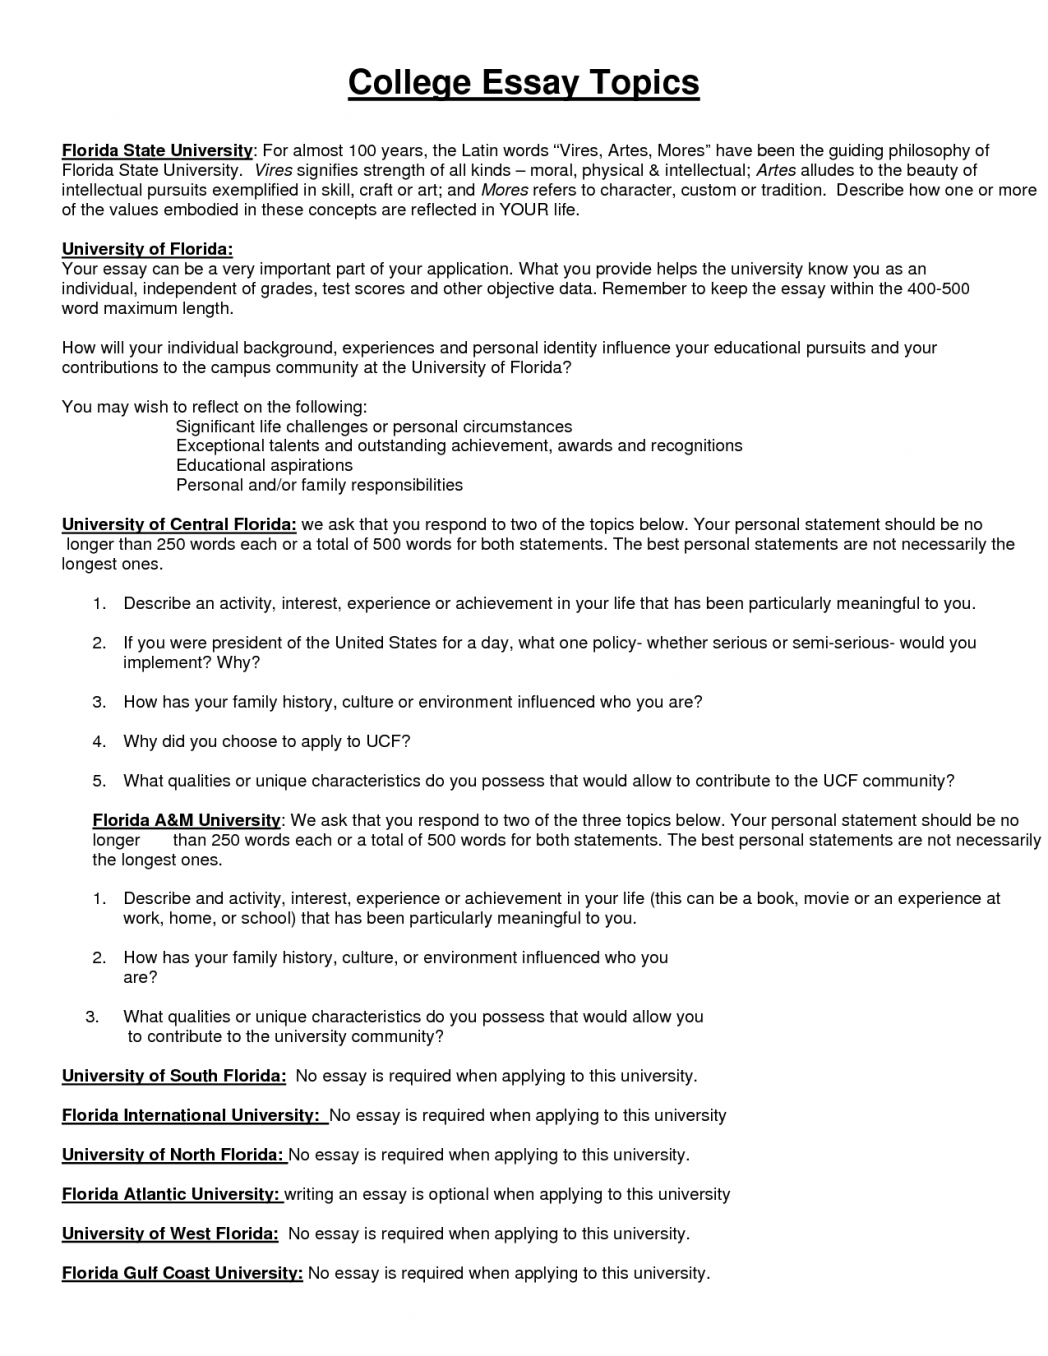 002 The Best College Essay Questions Fun Weird Typical For Towson Supplement Applications Answers Examples 1048x1356 Example Magnificent Quirk Full